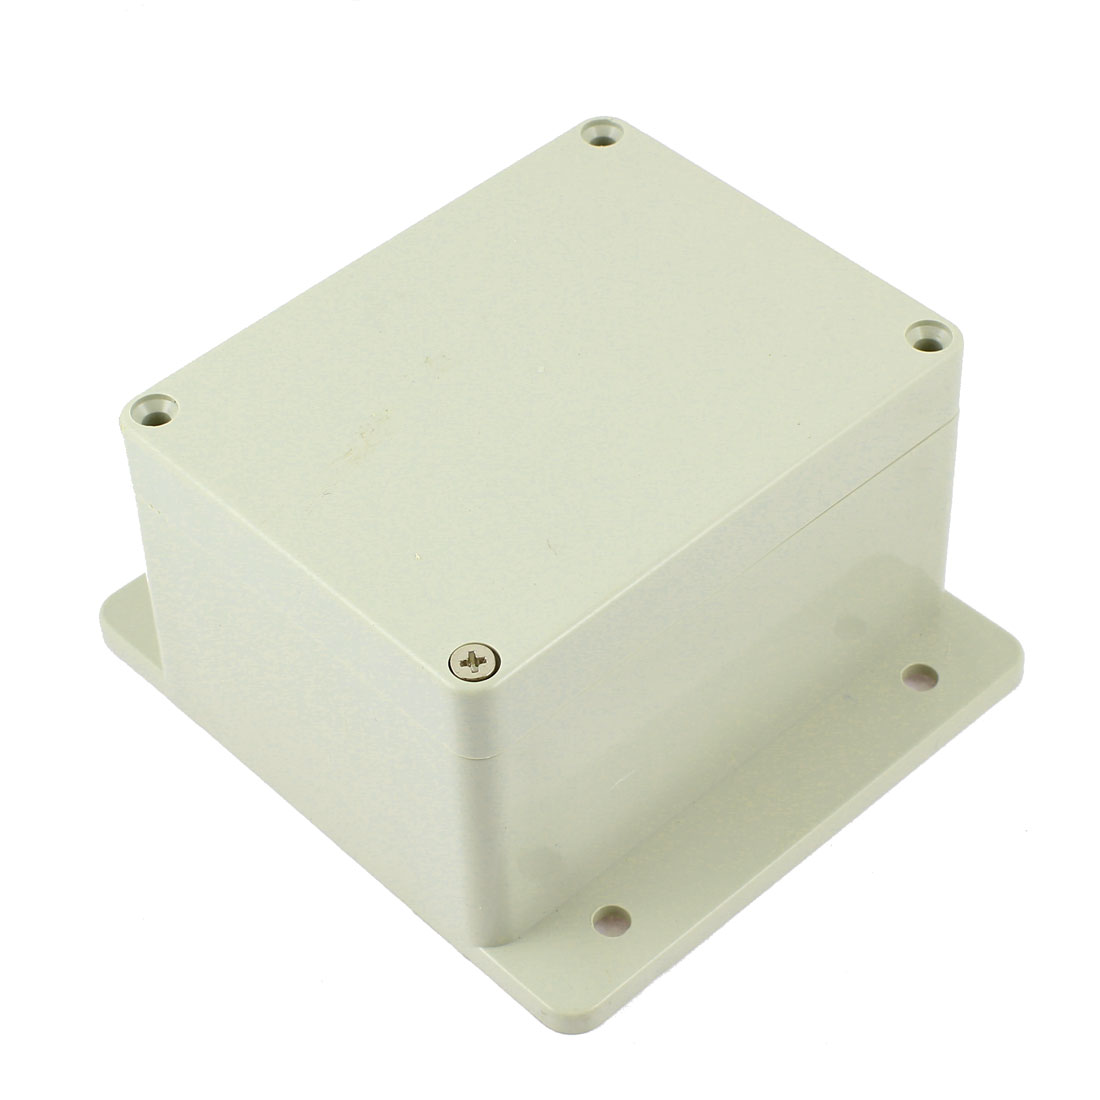 Rectangle Shaped Plastic Switch Junction Box 115 x 90 x 55mm